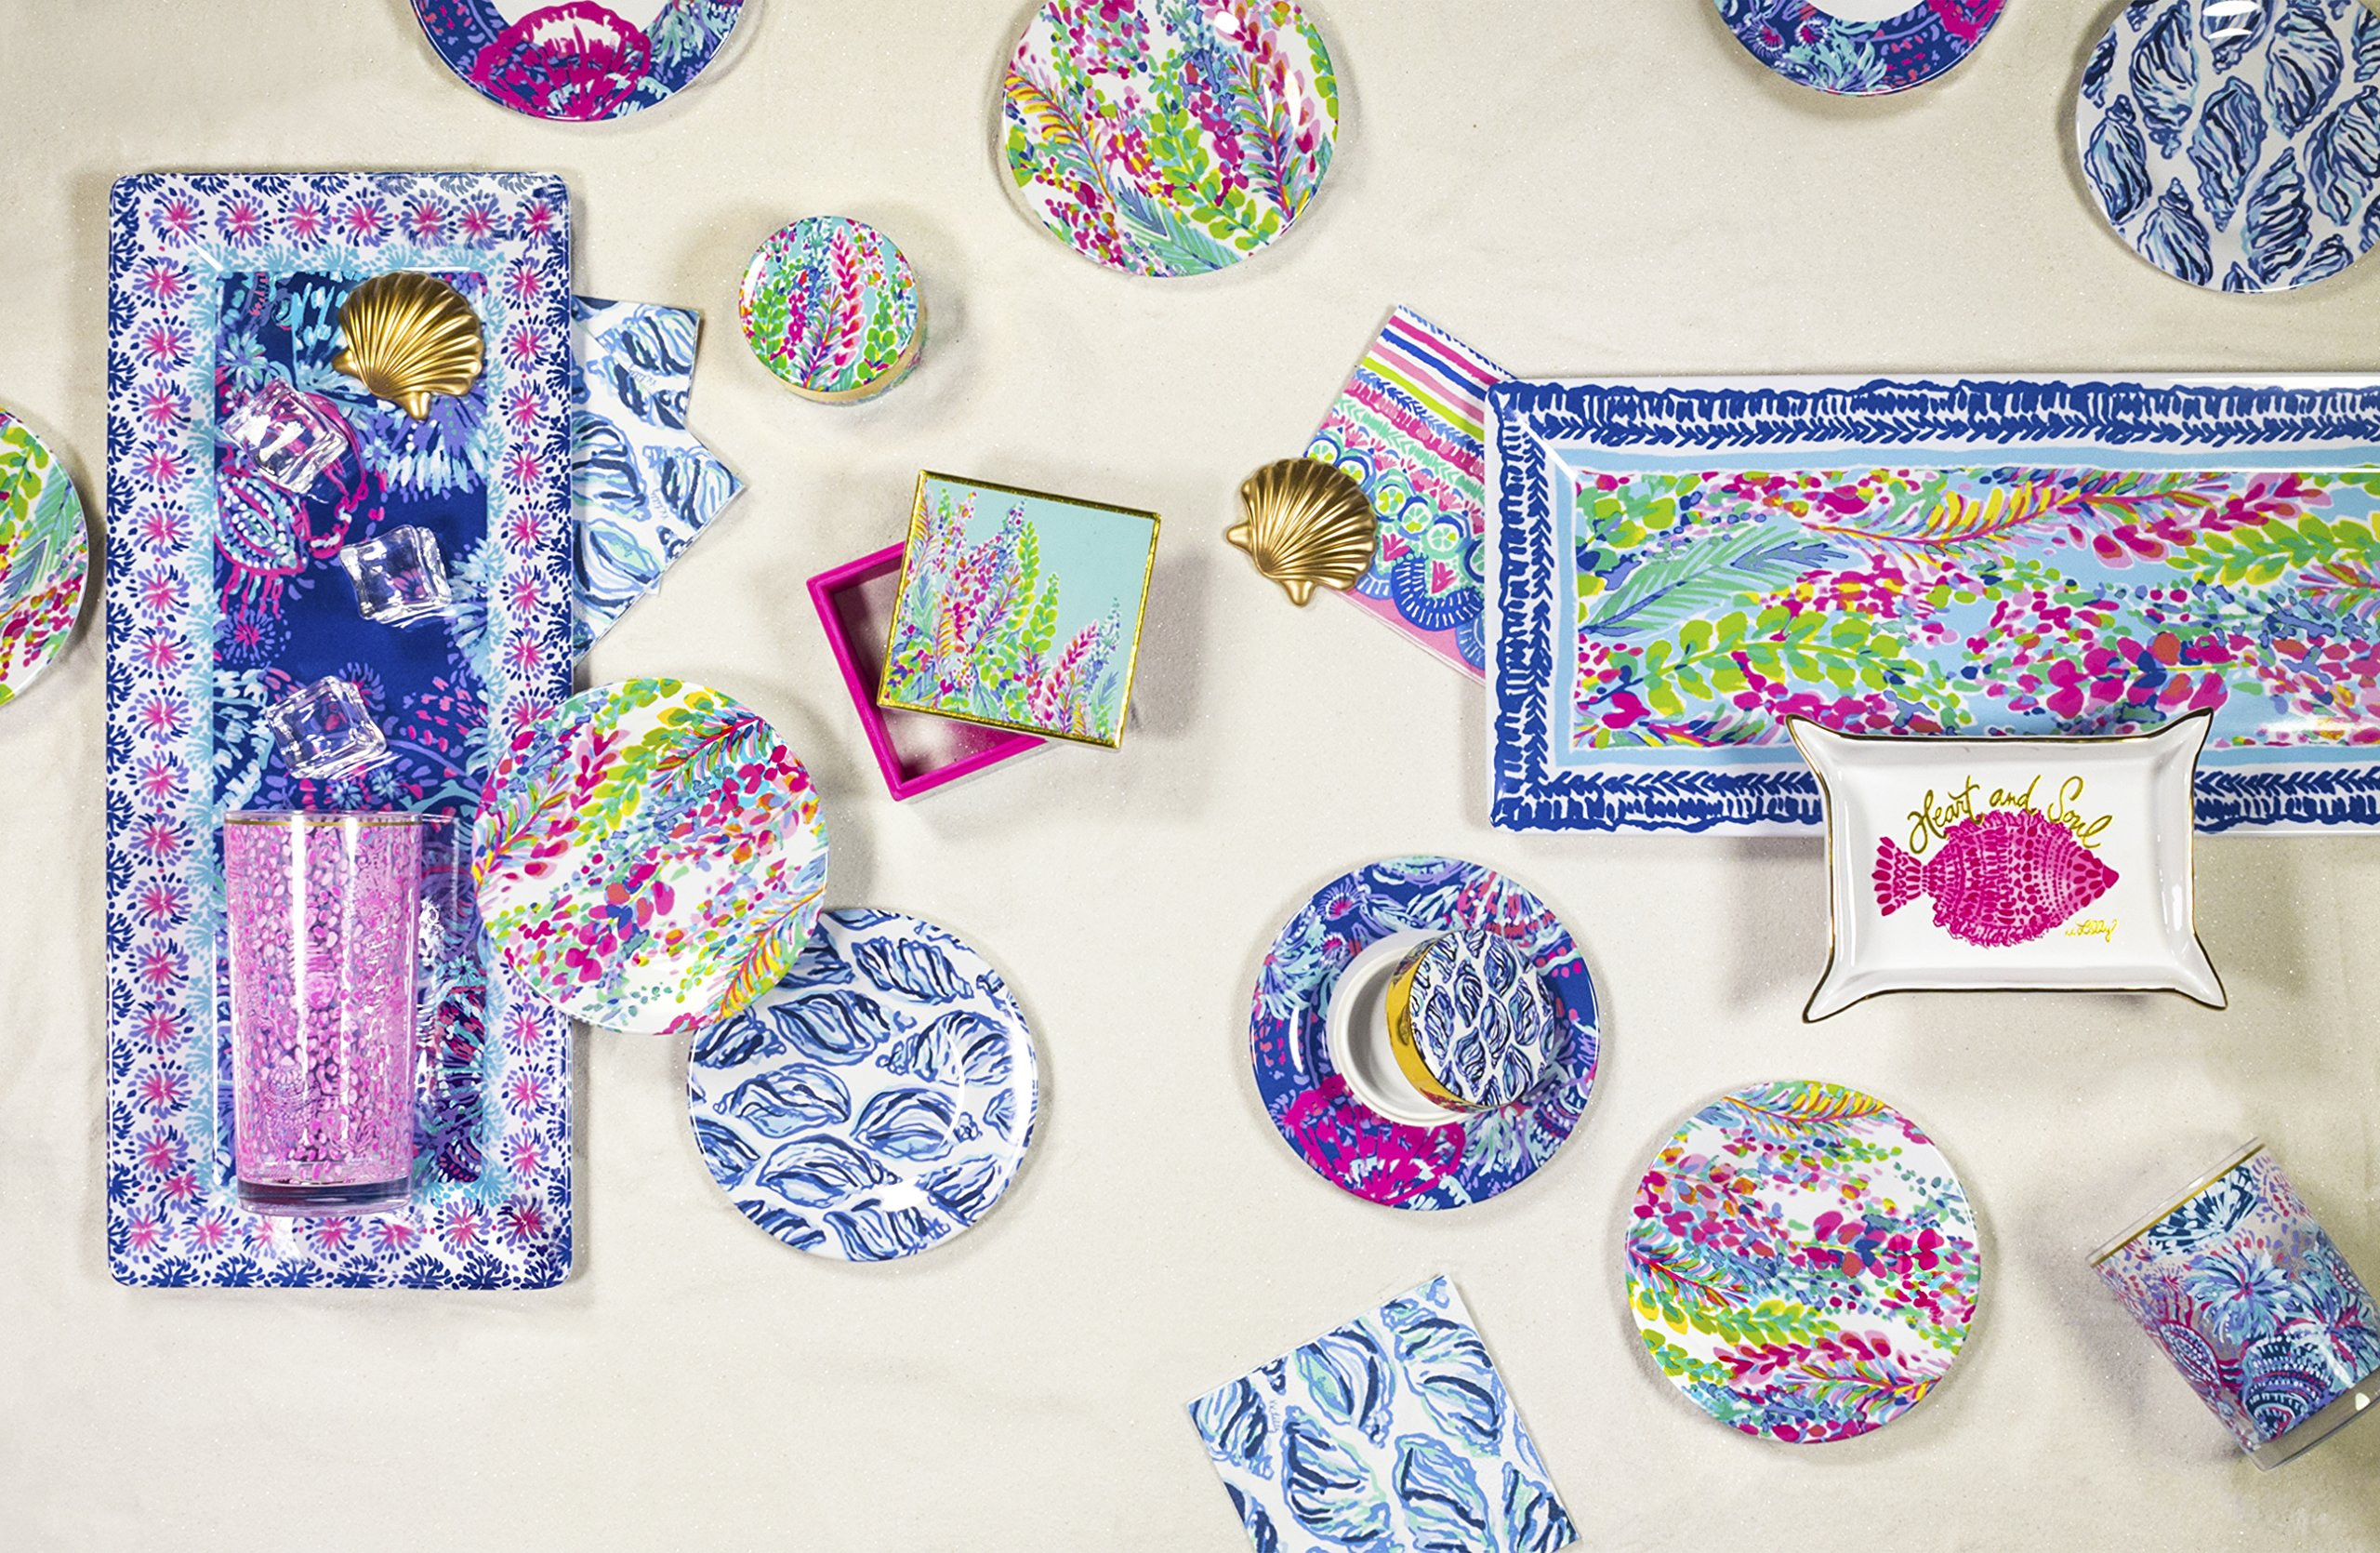 Lilly Pulitzer Patio Serving Set with Platter, Acrylic Lo Ball Glasses, Appetizer Plates